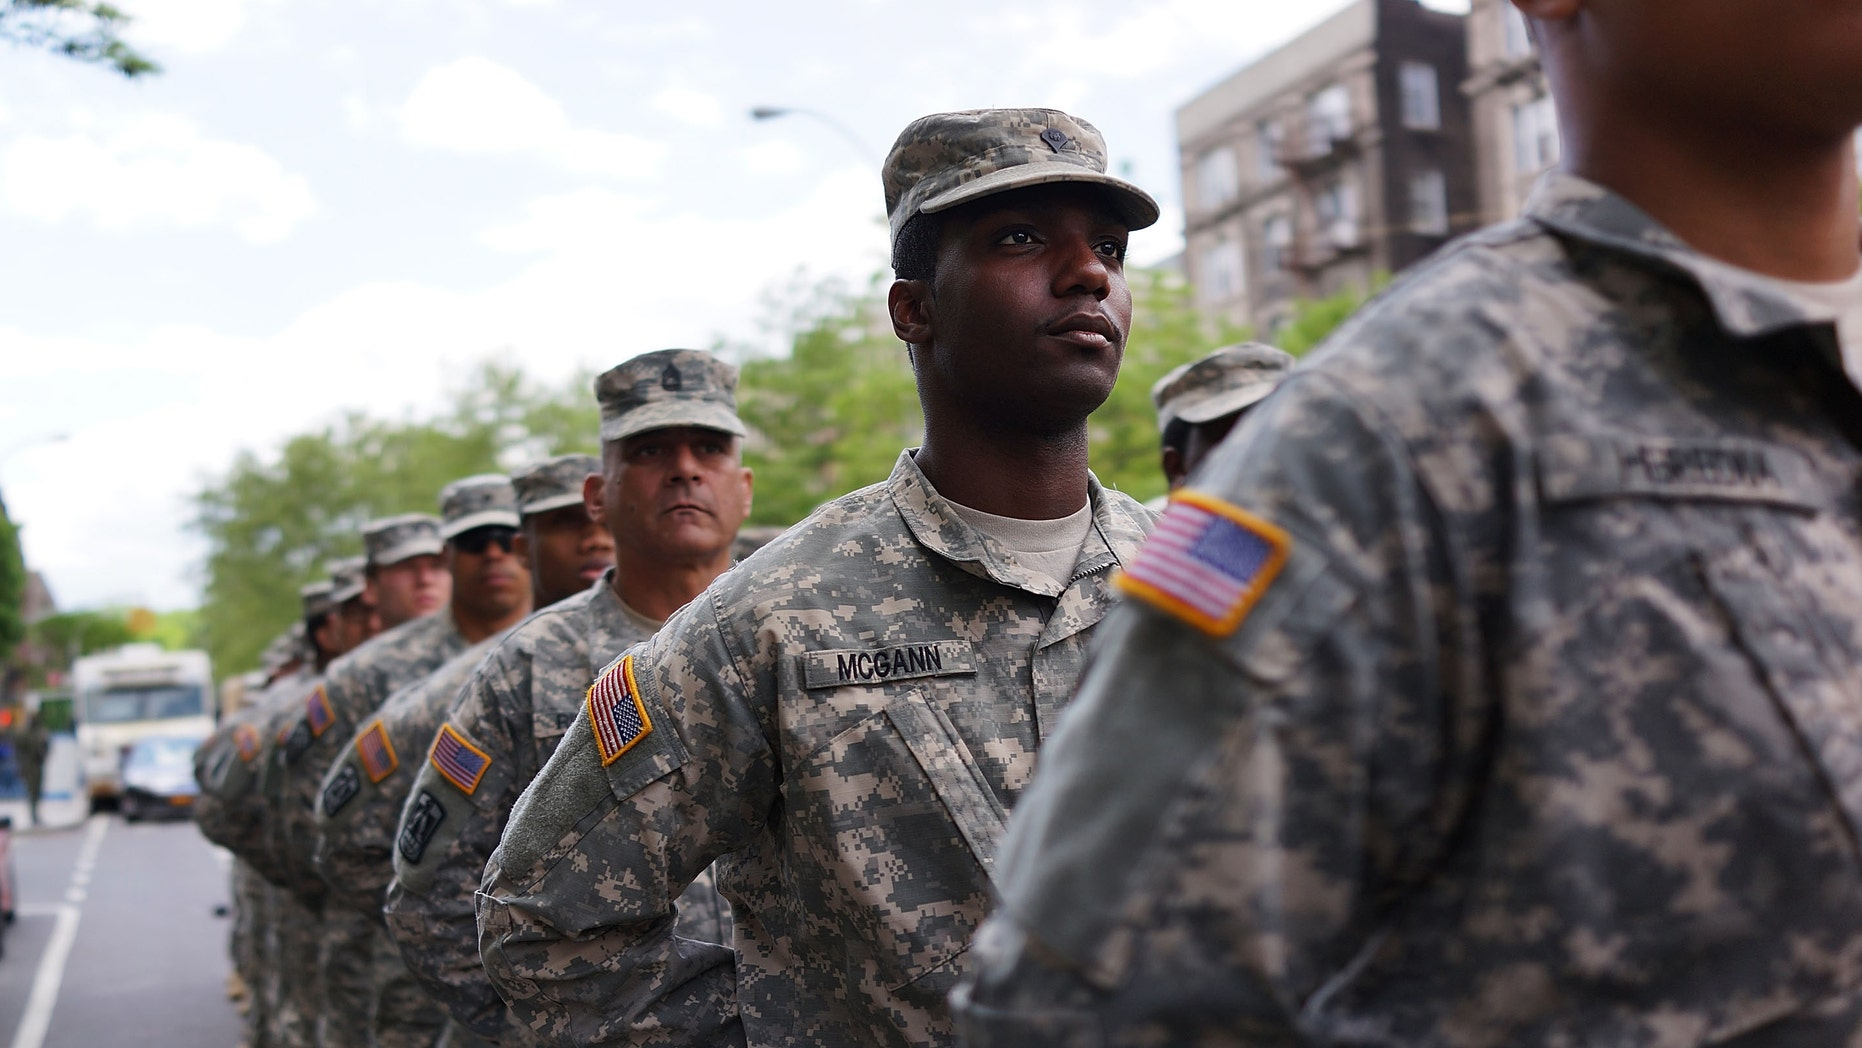 """NEW YORK, NY - MAY 18:  Memebrs of the Army's 369th Infantry Regiment prepare to march with fellow soldiers, boy scouts and various other military aligned groups in the 369th Infantry Regiment Parade in Harlem on May 18, 2014 in New York City. The parade, which takes place on the historic Adam Clayton Powell Jr. Boulevard, looks to celebrate the contribution African Americans and Puerto Ricans have made to military. The 369th was home to the """"Harlem Hellfighters"""", a unit made up of both African Americans and Puerto Ricans, which fought in both World War I and World War II.  (Photo by Spencer Platt/Getty Images)"""